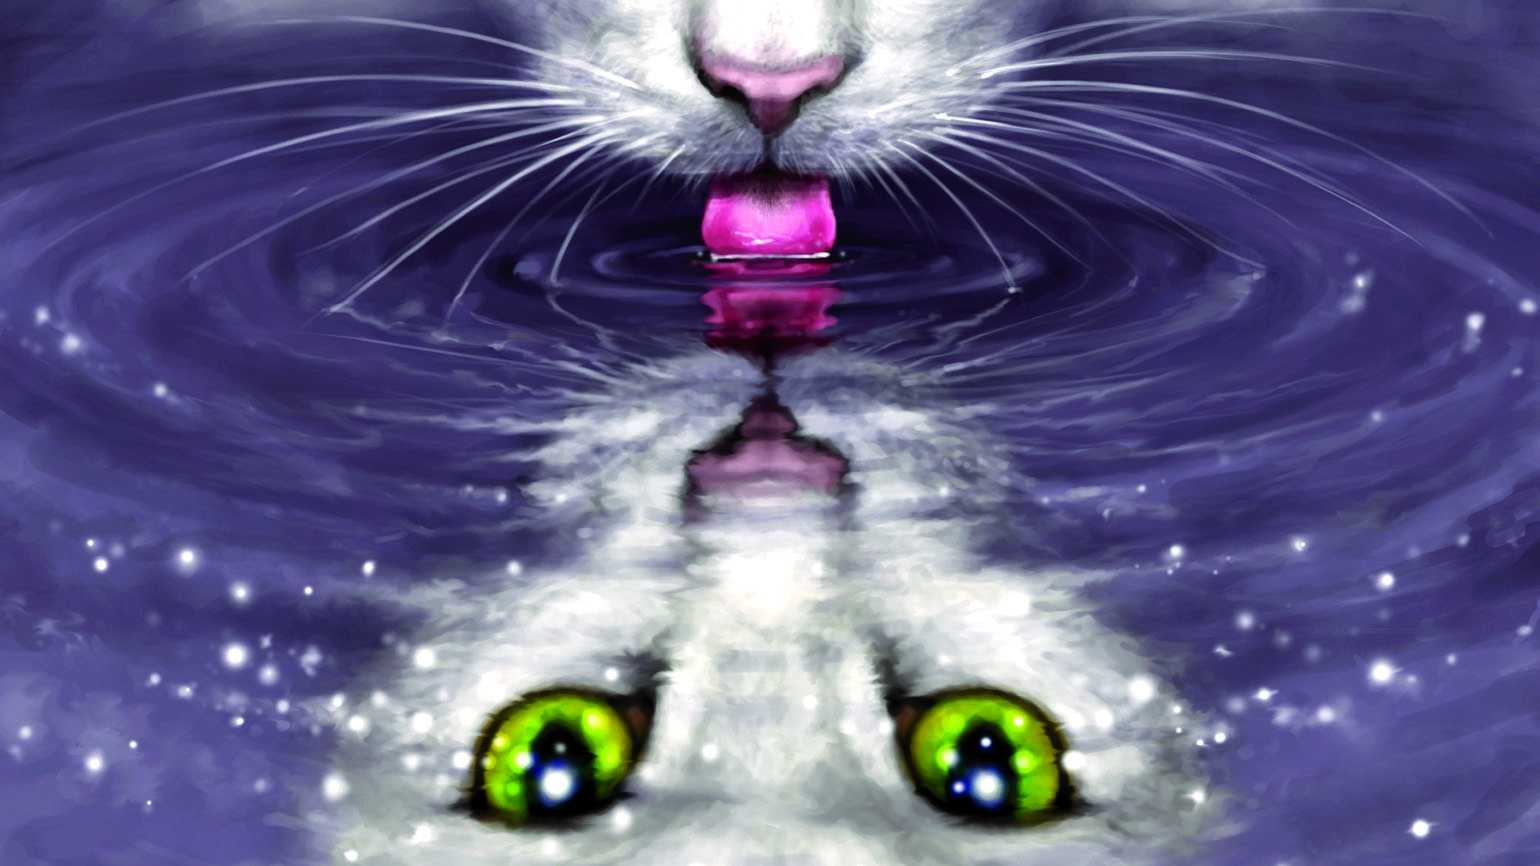 Illustration of a cat drinking water